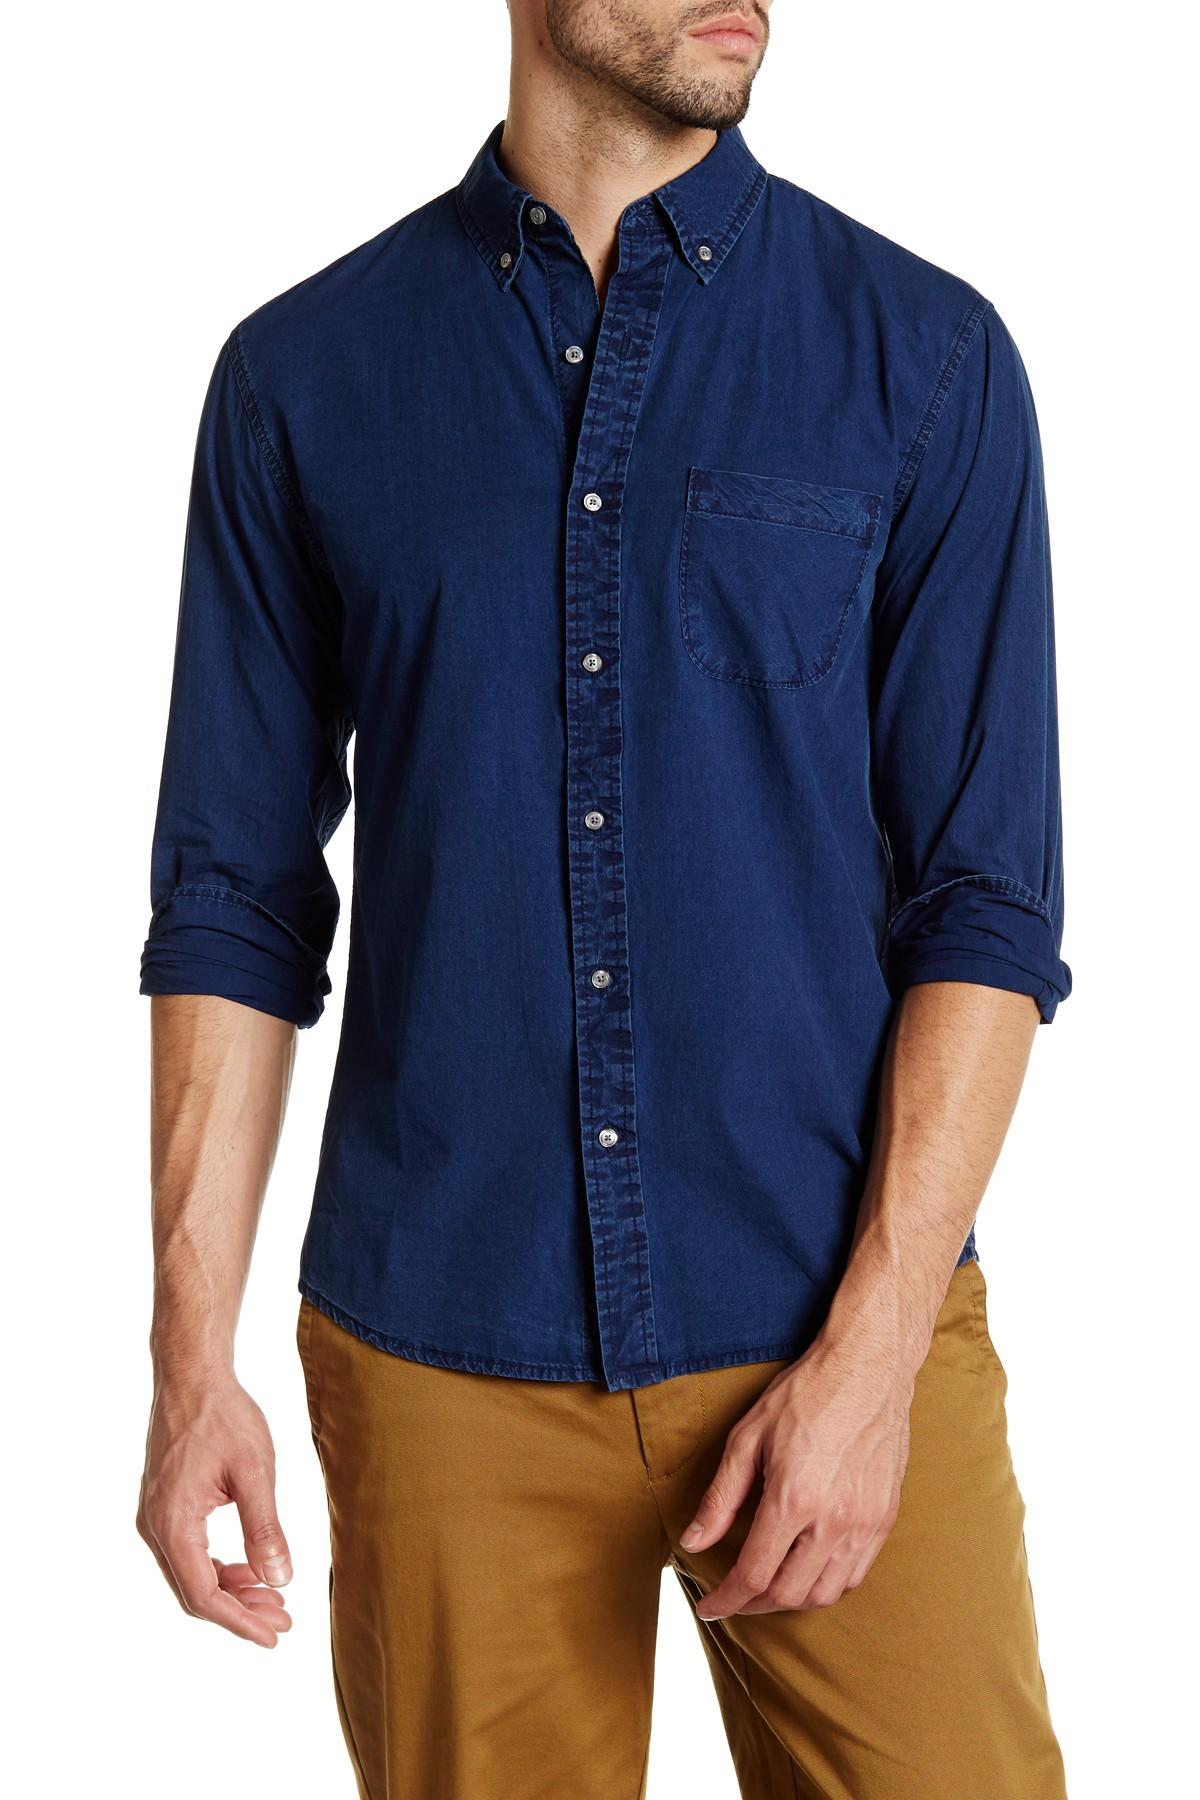 Lands 39 end chambray long sleeve regular fit shirt in blue for Men s regular fit shirts